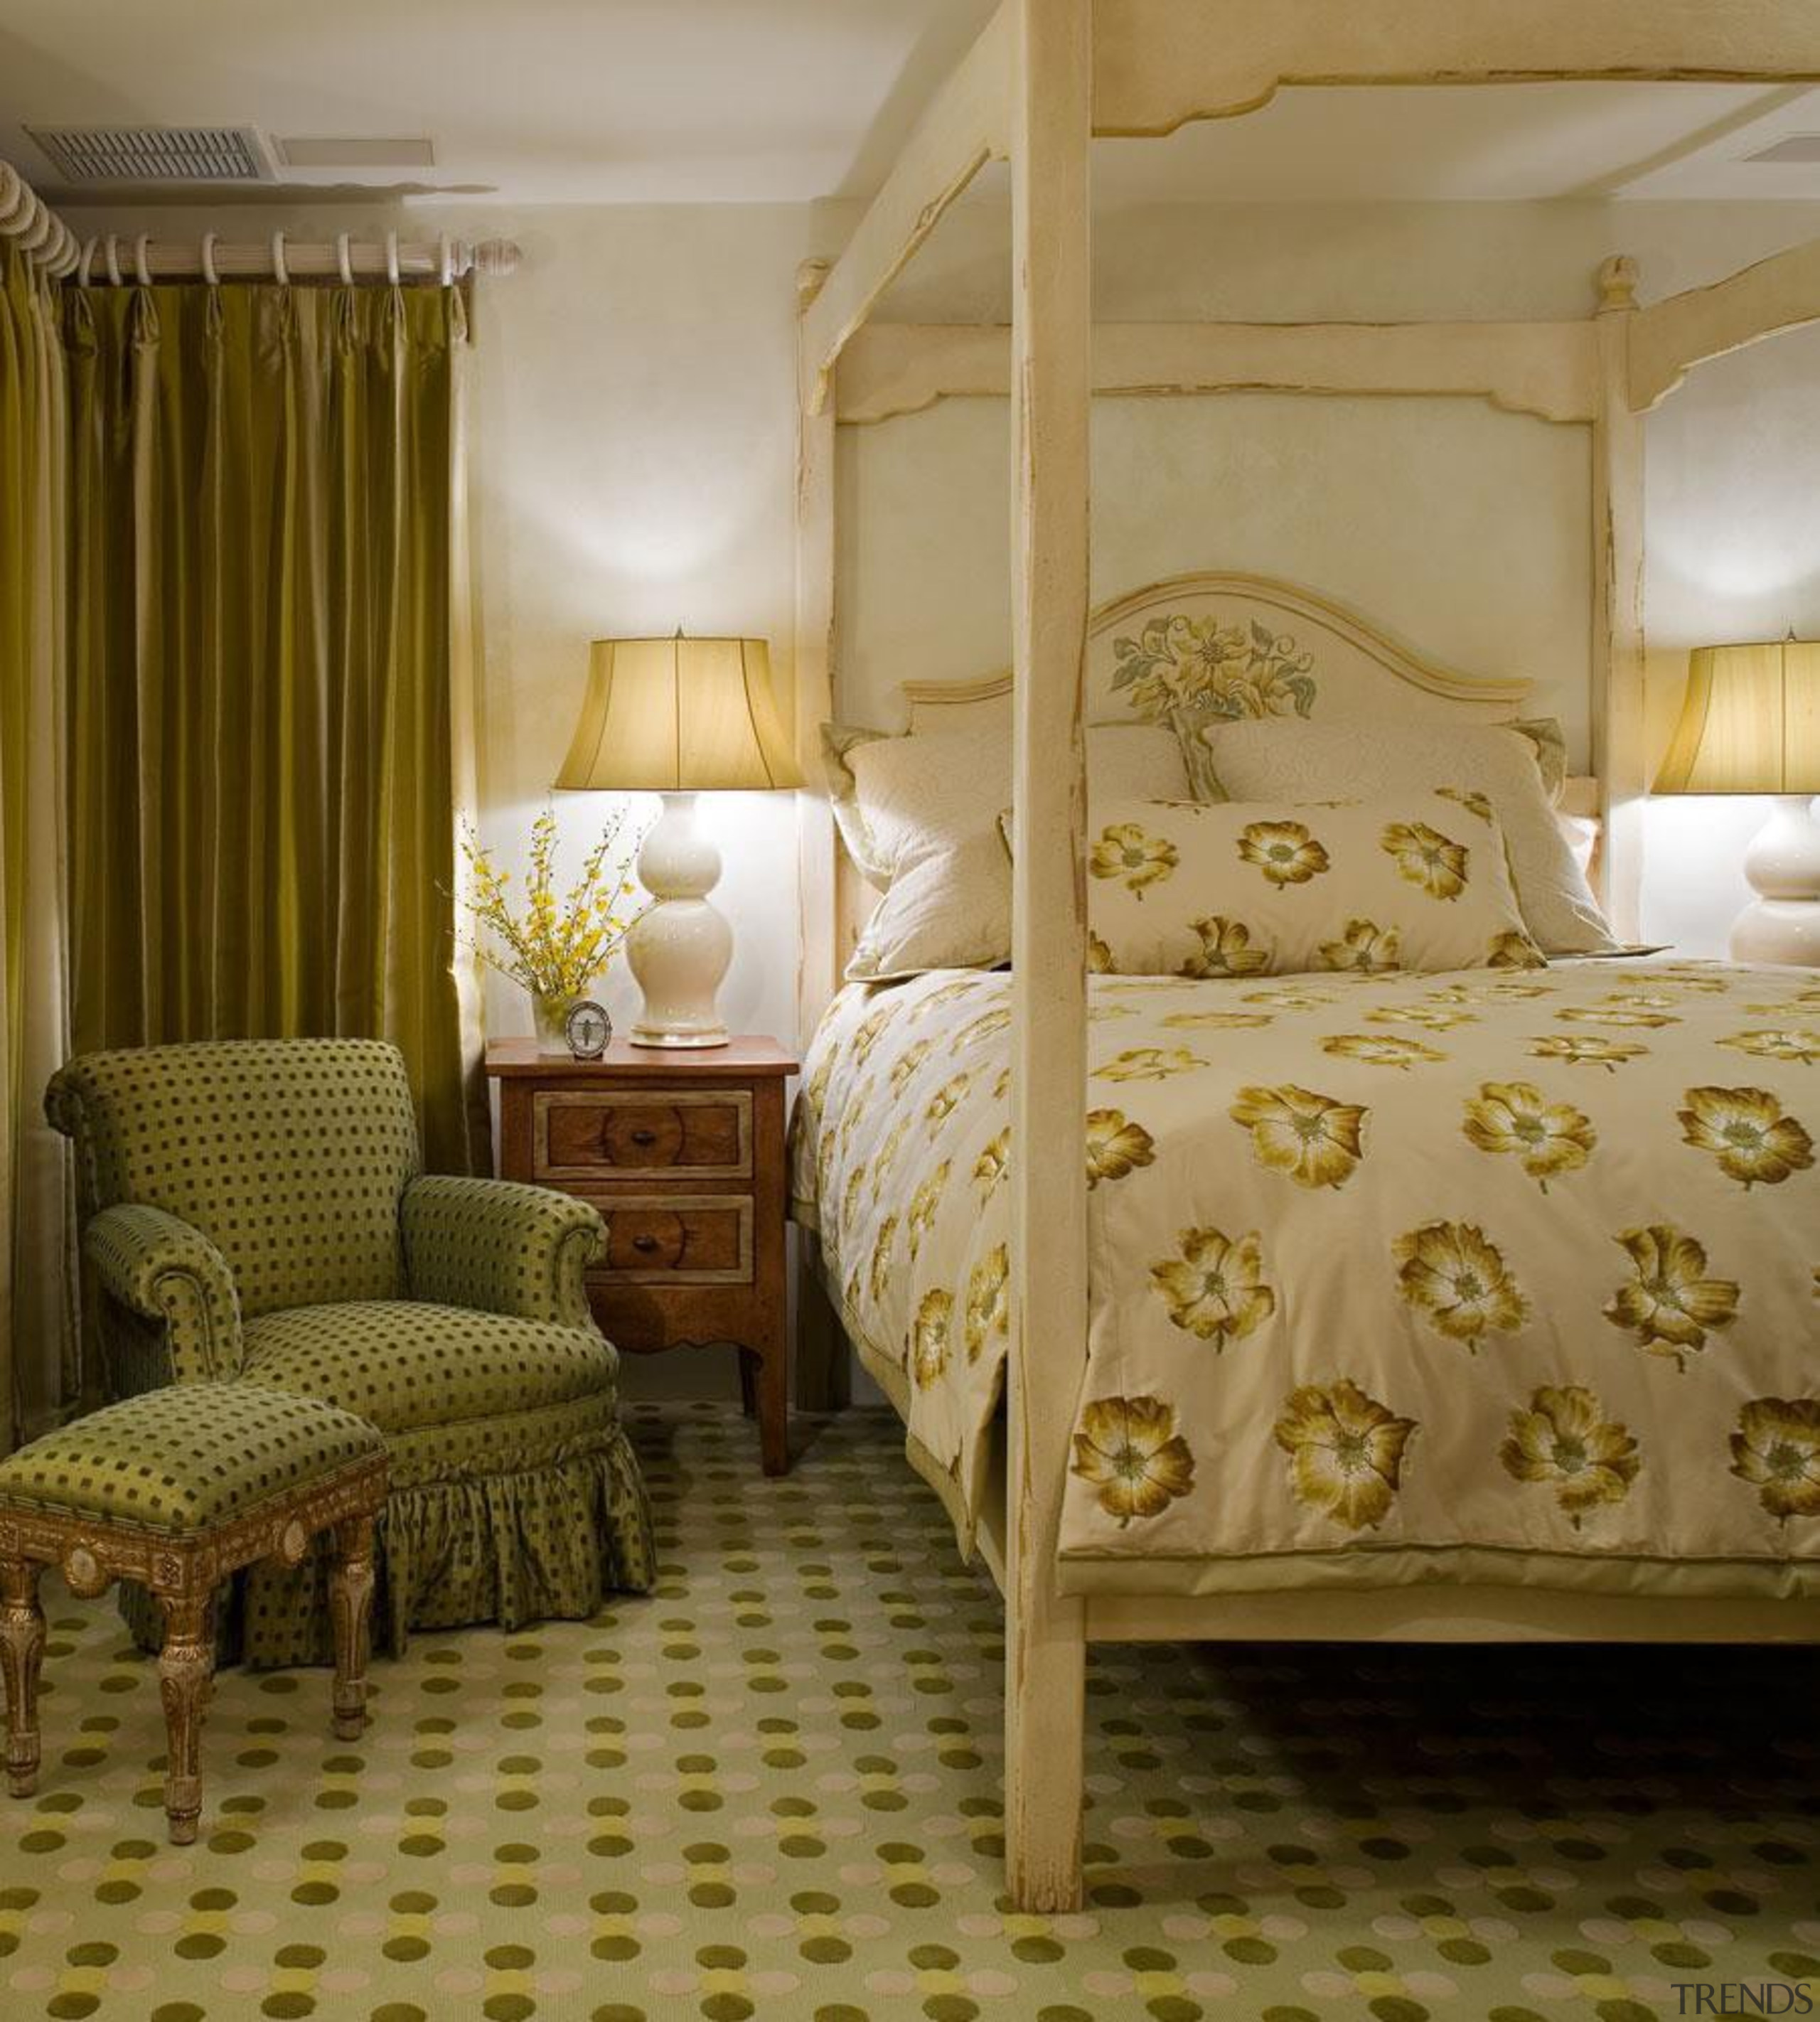 Our aesthetic is characterized by diversity and unified bed, bed frame, bedding, bedroom, ceiling, curtain, floor, furniture, home, interior design, room, suite, textile, wall, window, window treatment, brown